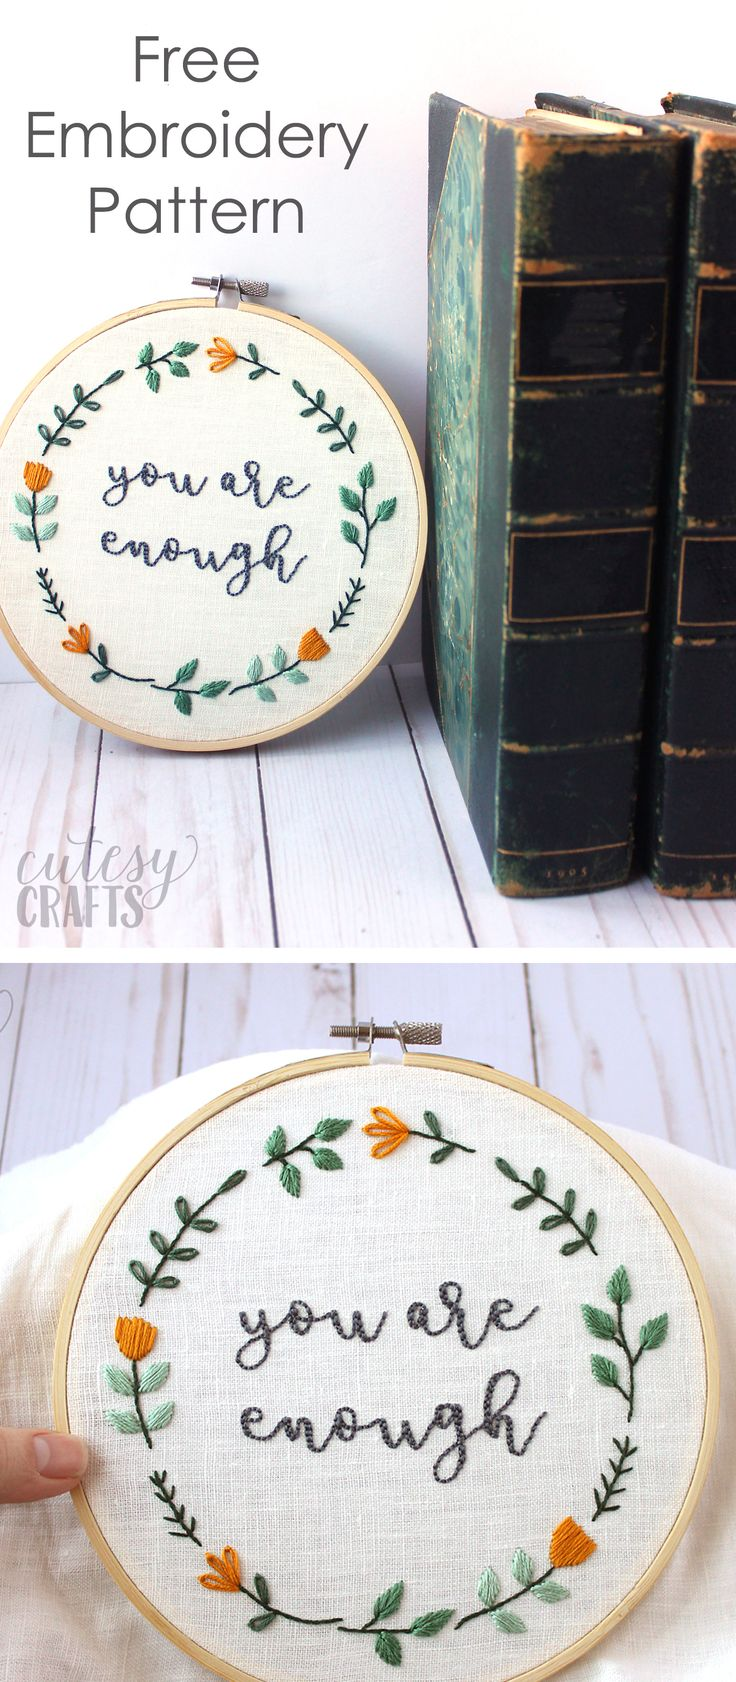 DIY Crafts : Free Hand Embroidery Pattern for an inspirational quote ...